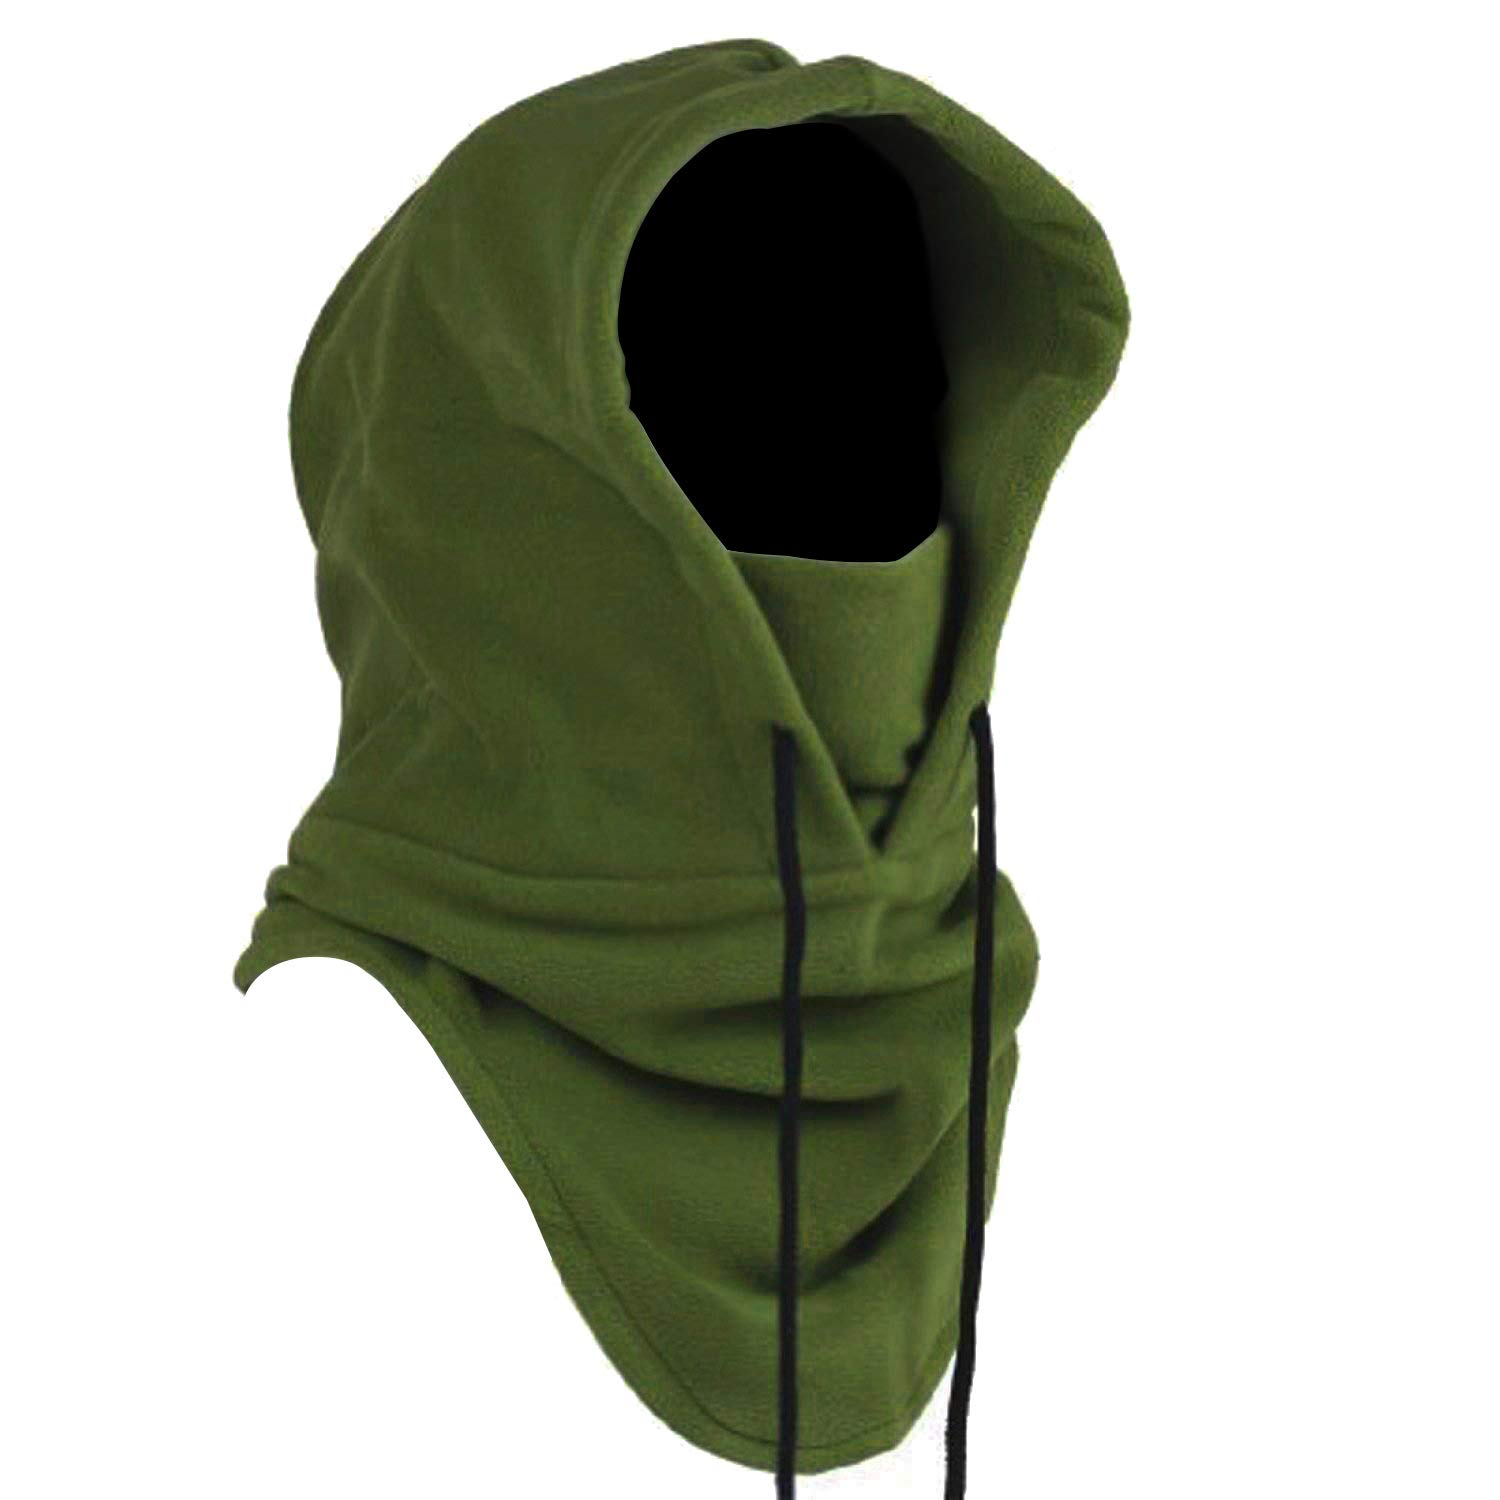 Oldelf Tactical Heavyweight Balaclava Outdoor Sports Mask